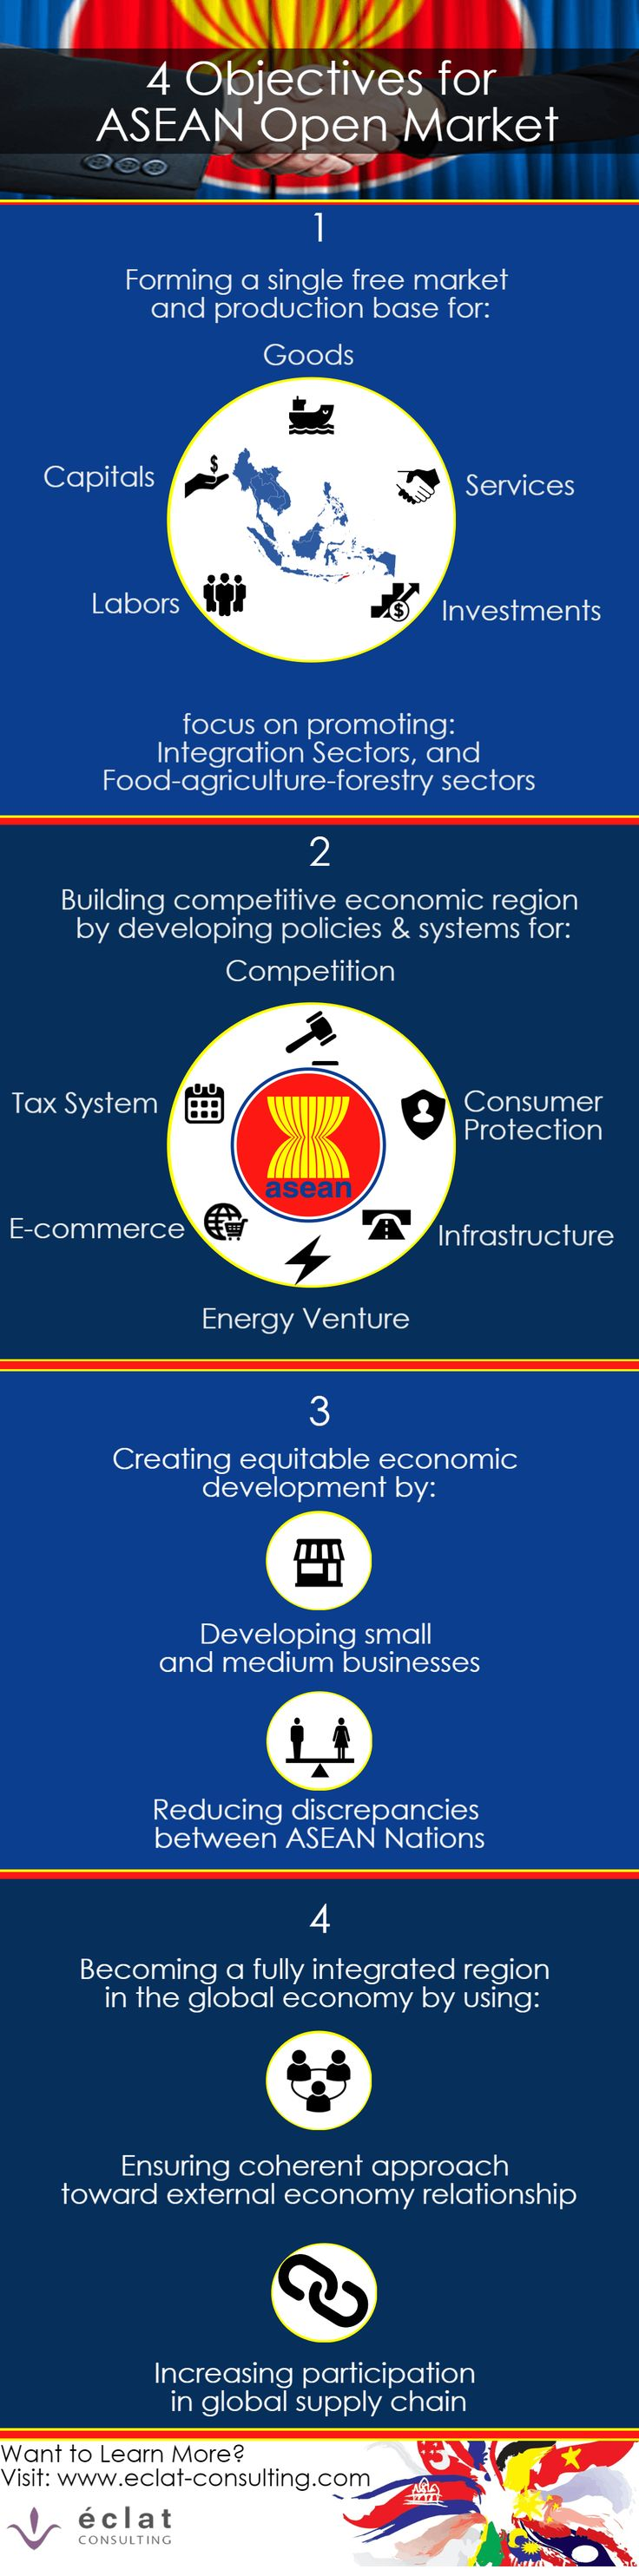 In order to make a full use of the upcoming ASEAN Open Market, it is good to know the objectives behind the initiative. Discover four objectives of ASEAN Open Market in this Infographic.